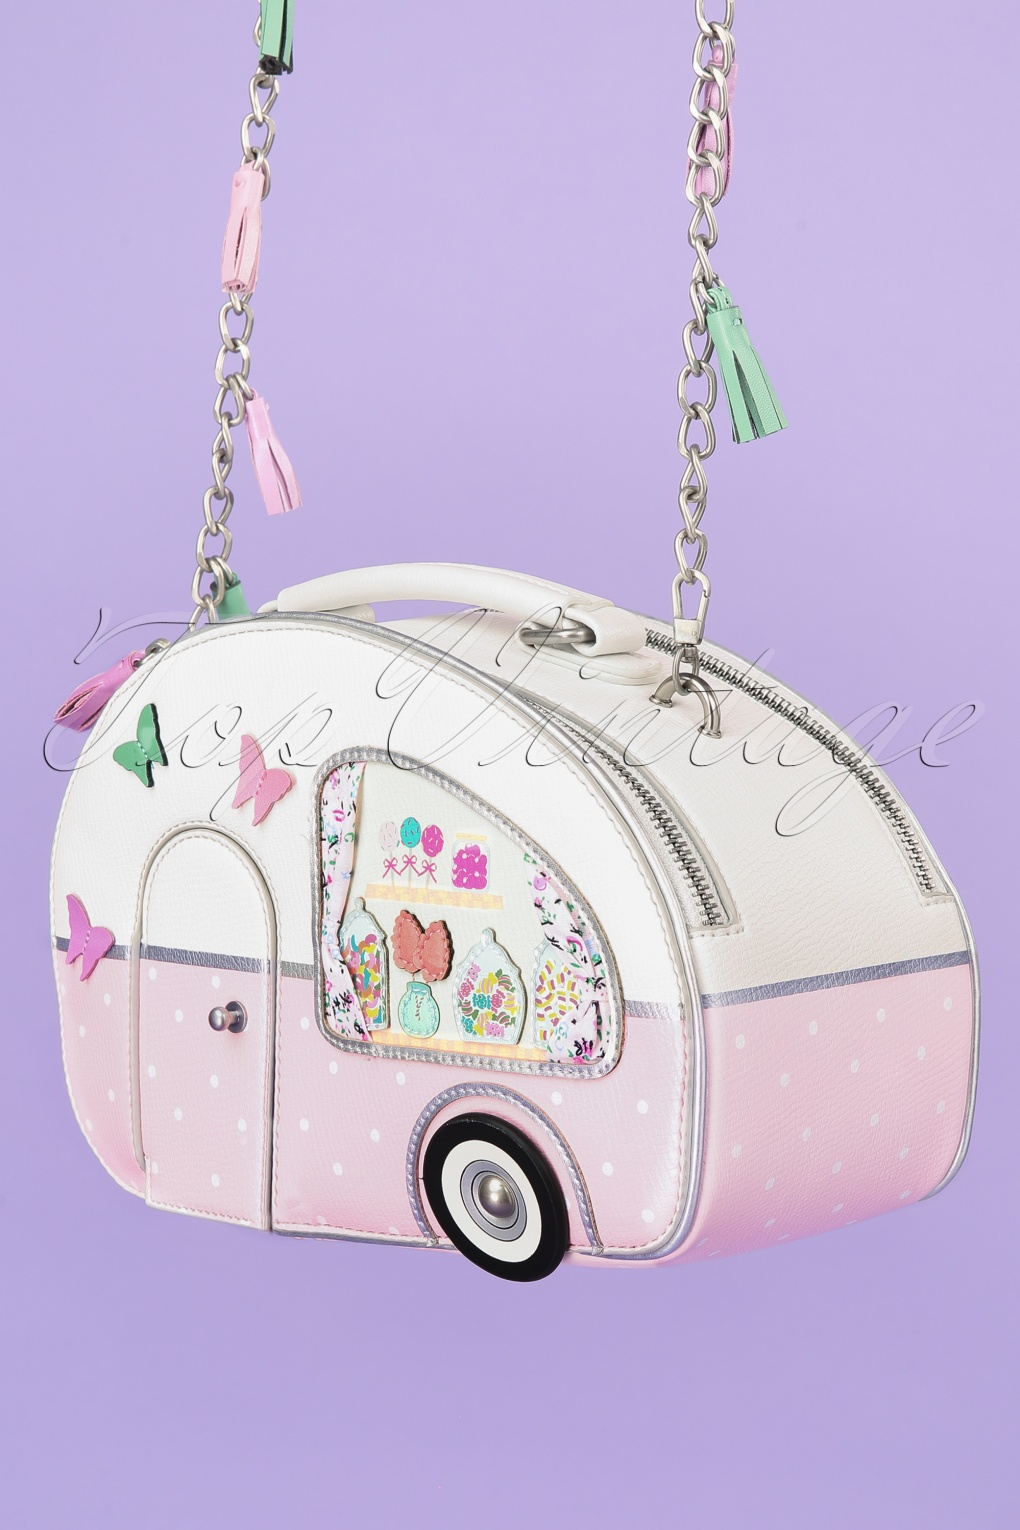 Vintage & Retro Handbags, Purses, Wallets, Bags 50s Sweetie Caravan Box Bag in Pink �94.46 AT vintagedancer.com